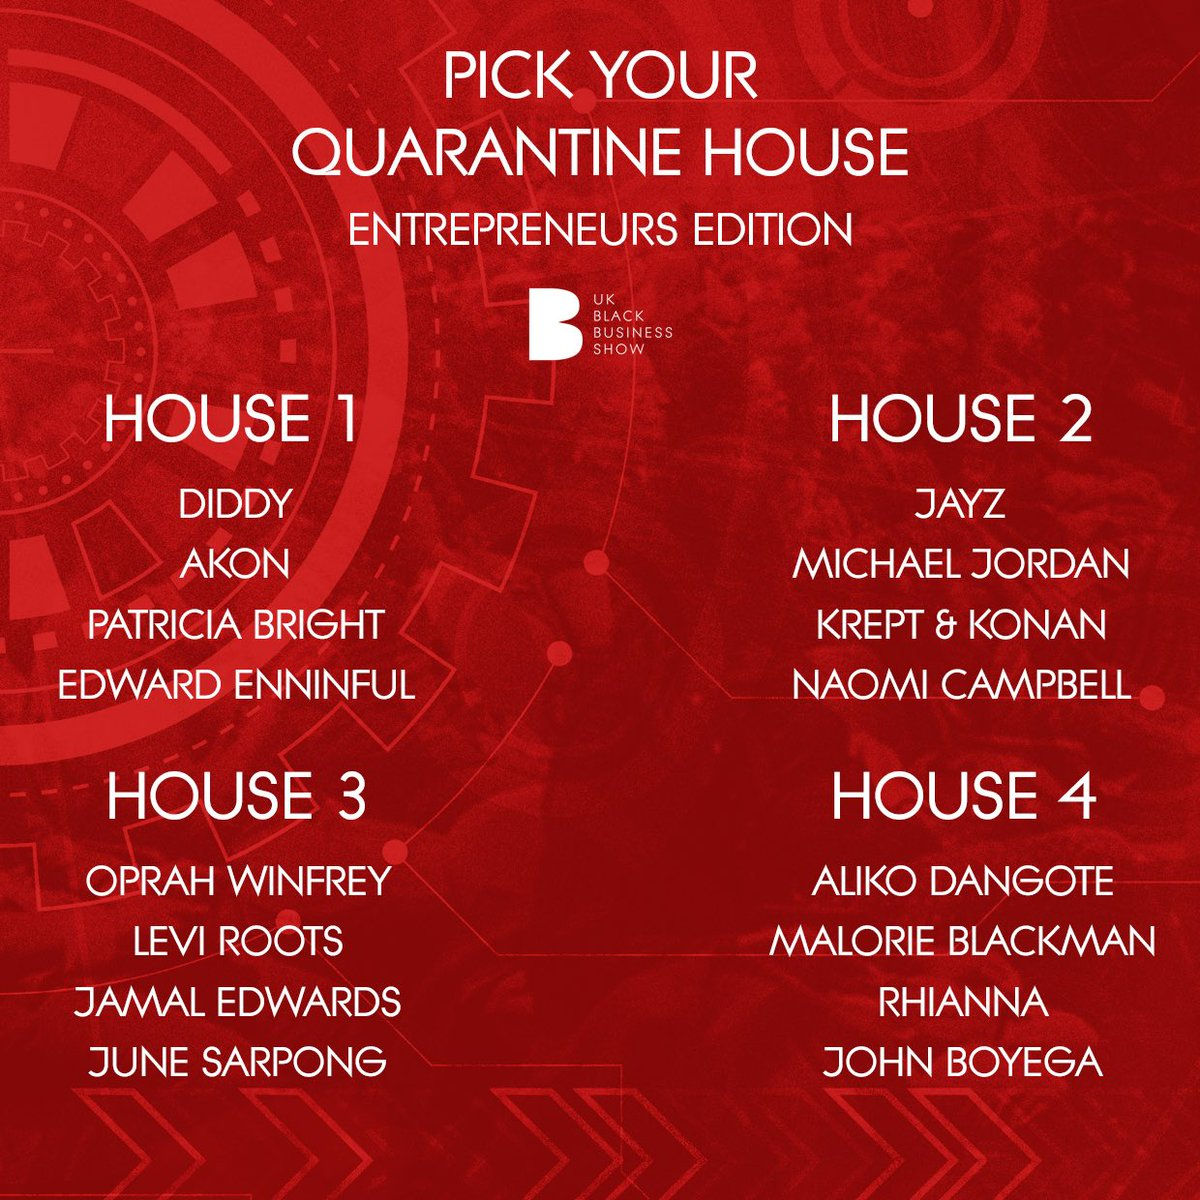 Pick your Quarantine house ?  If you could choose 1 house to stay in, which one would it be and why 🤔 https://t.co/8SYYldVB75